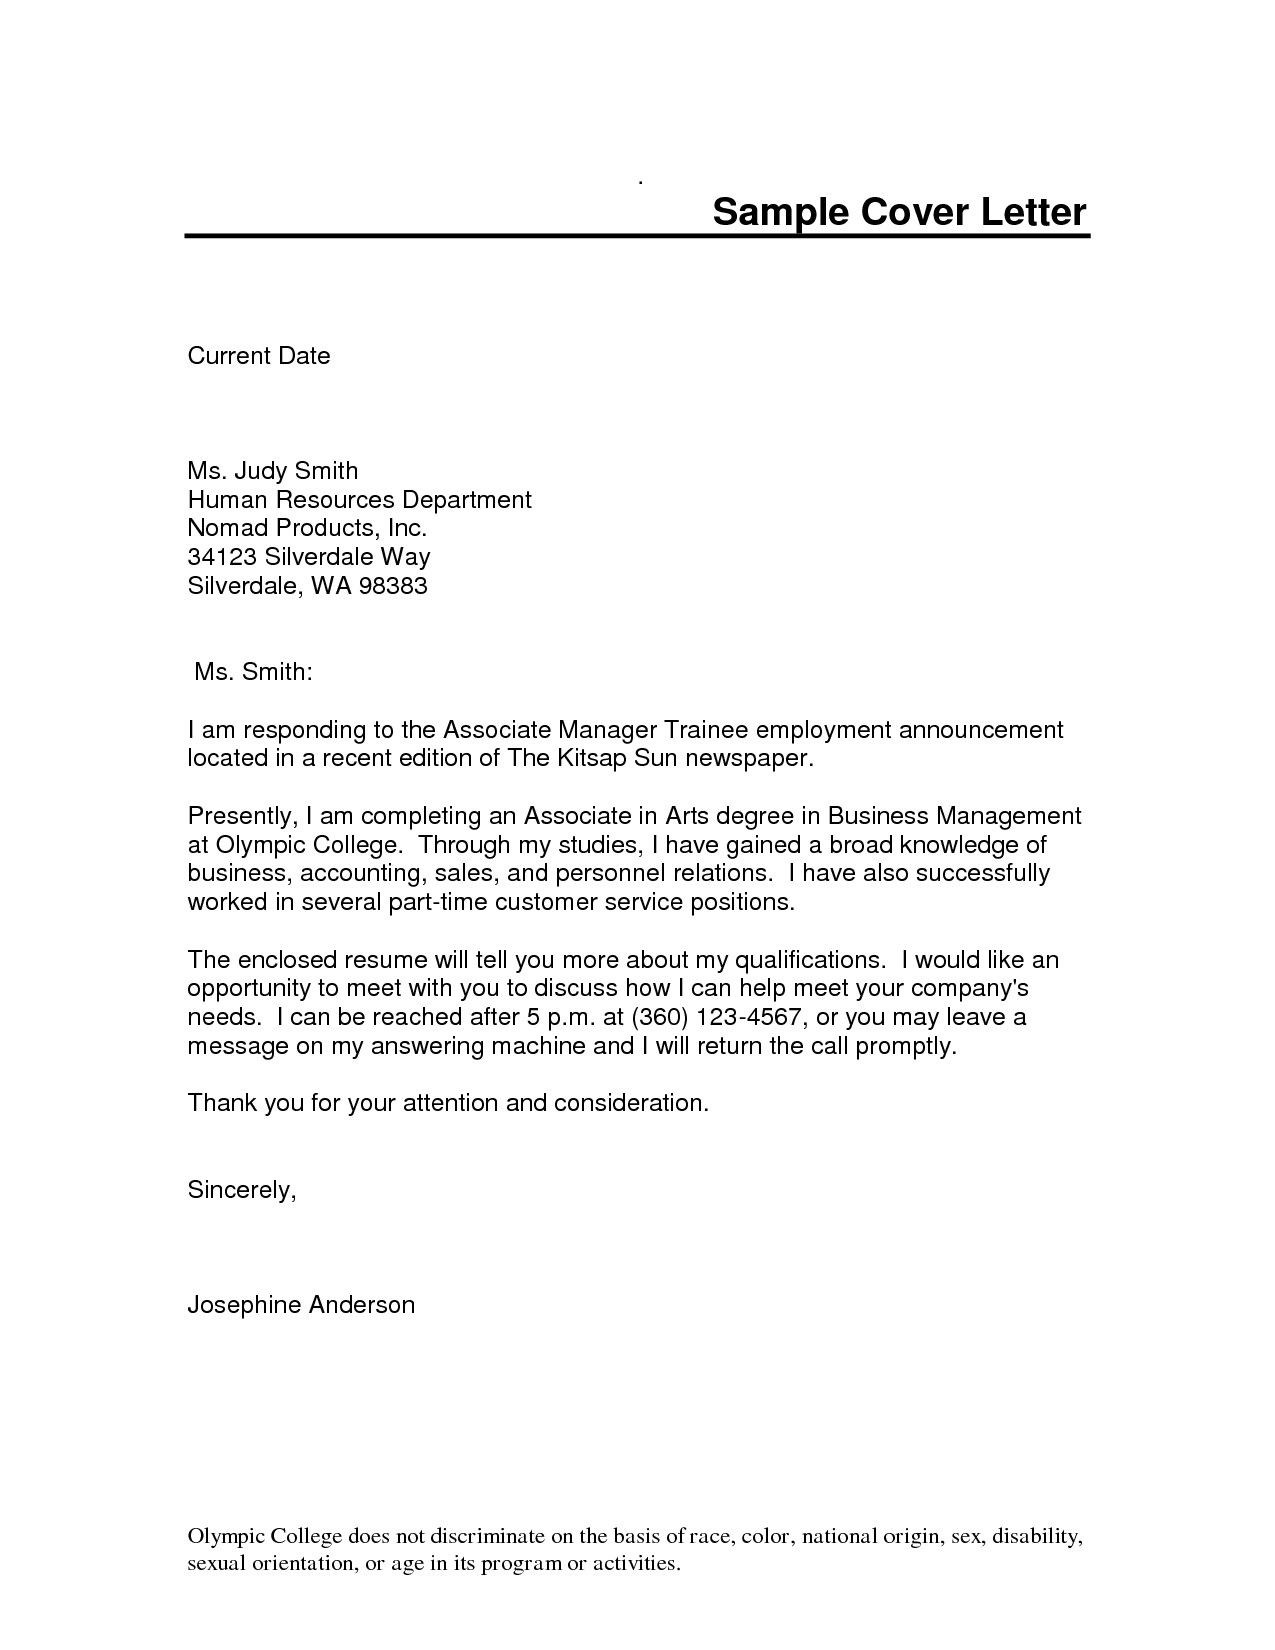 cover letter sample for job application in word format